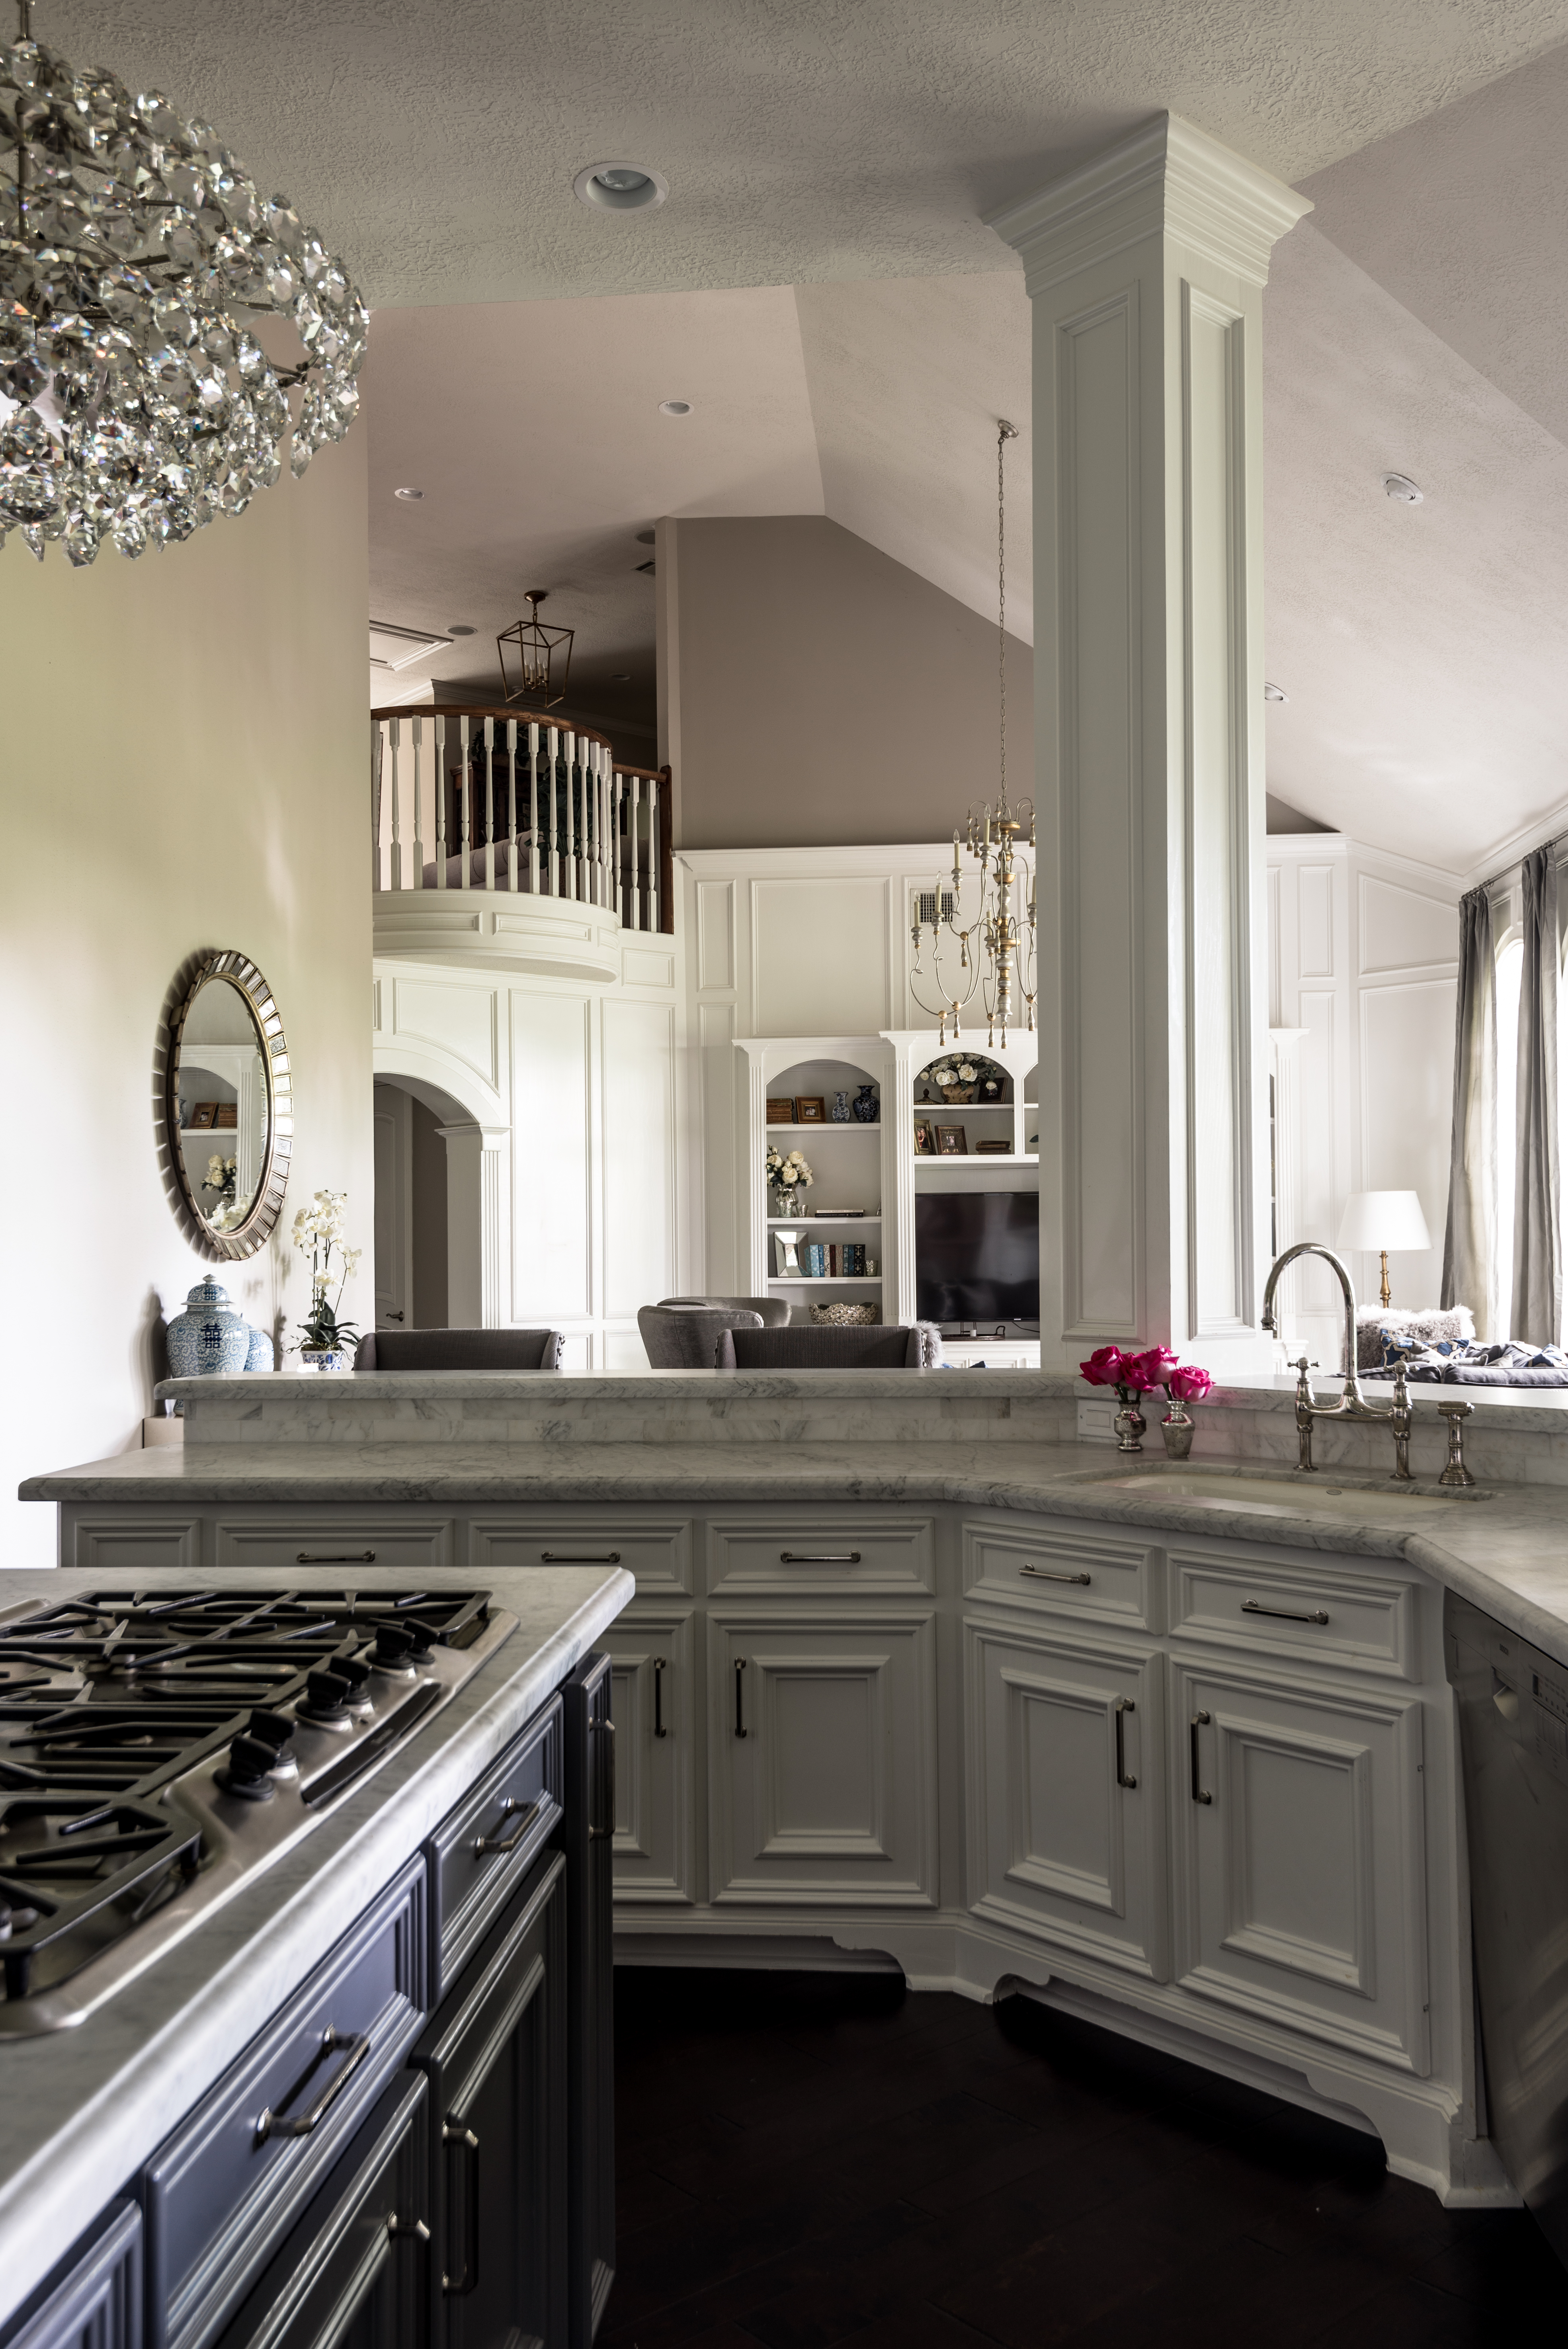 6 Tips For Redesigning Your Kitchen Countertops | HuffPost on Countertop Decor  id=87309